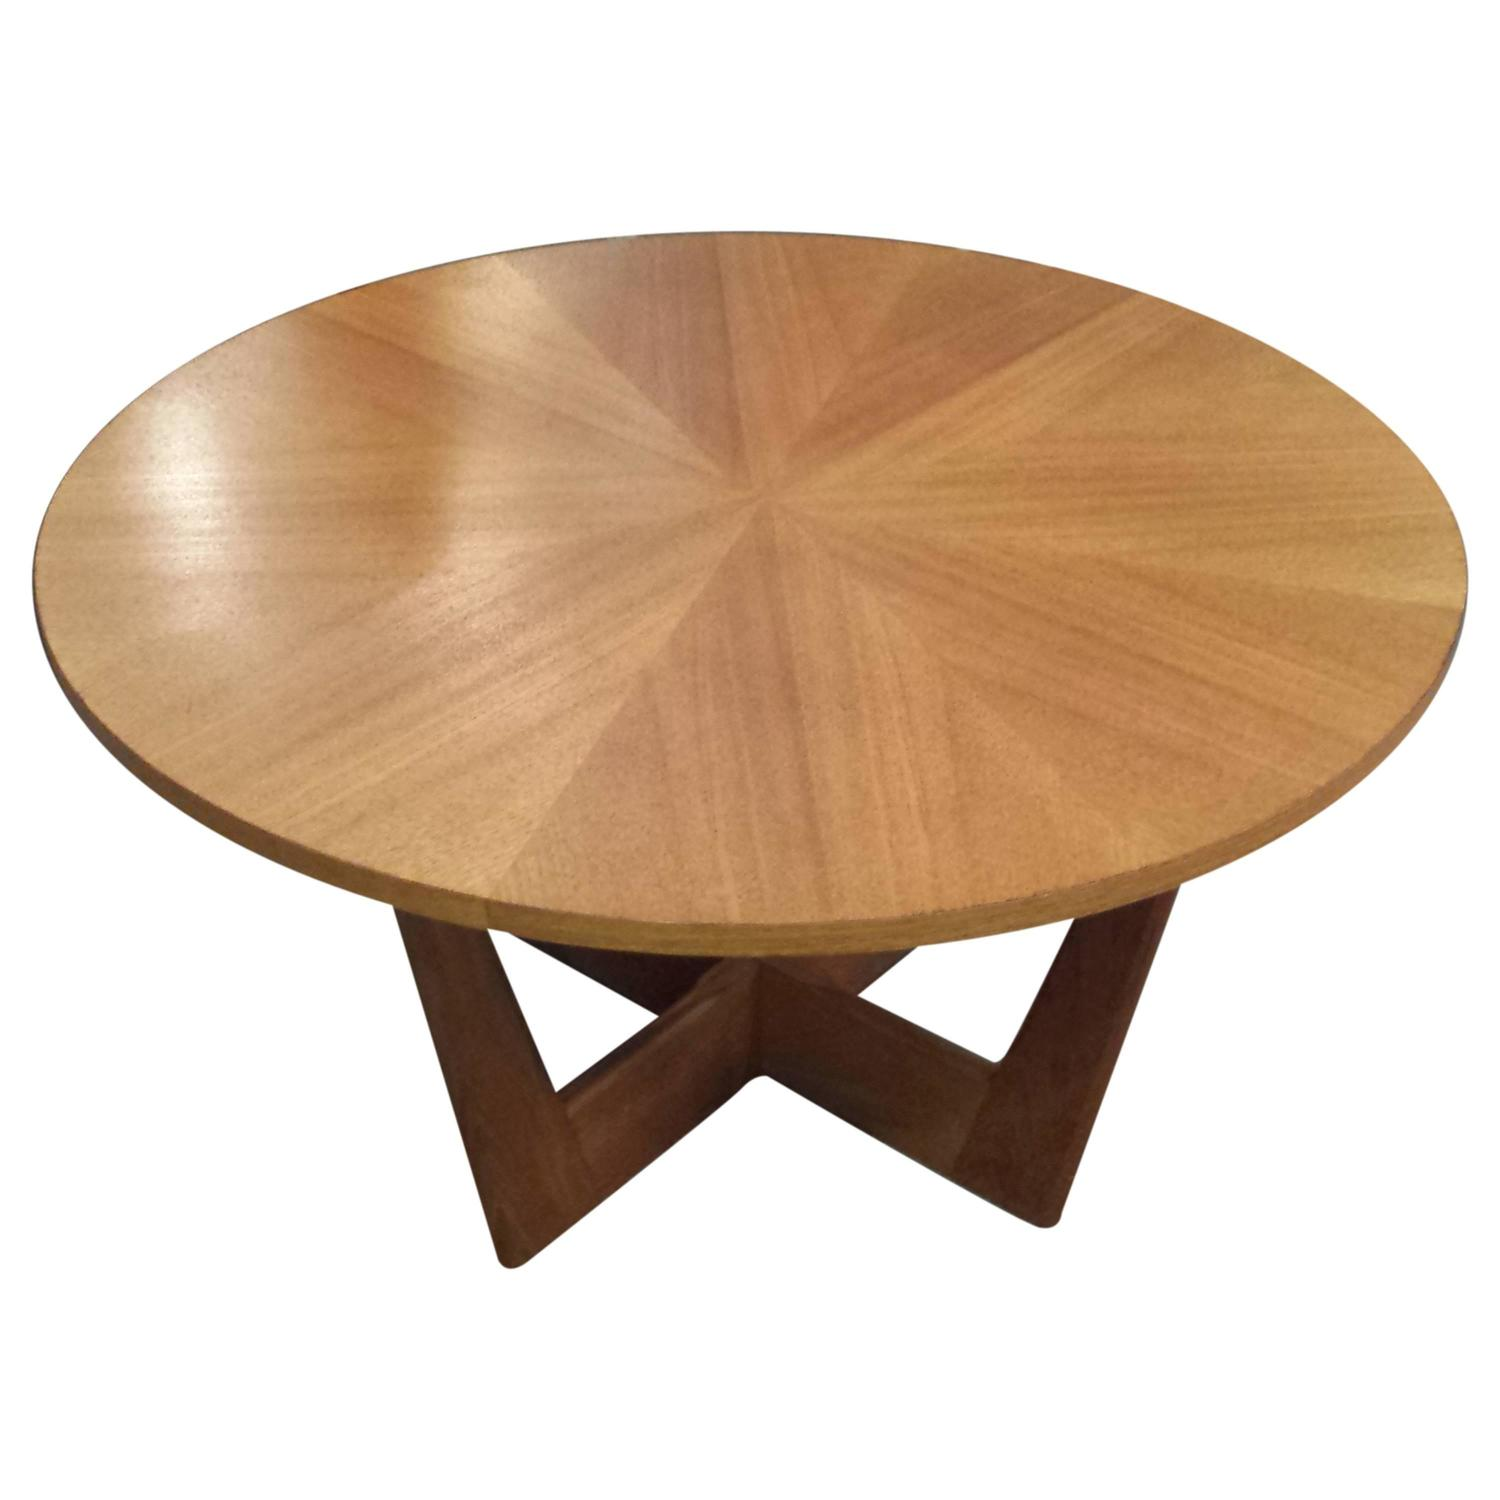 Danish Teak Circular Midcentury Coffee Table With Pie Shaped Veneered Top At 1stdibs